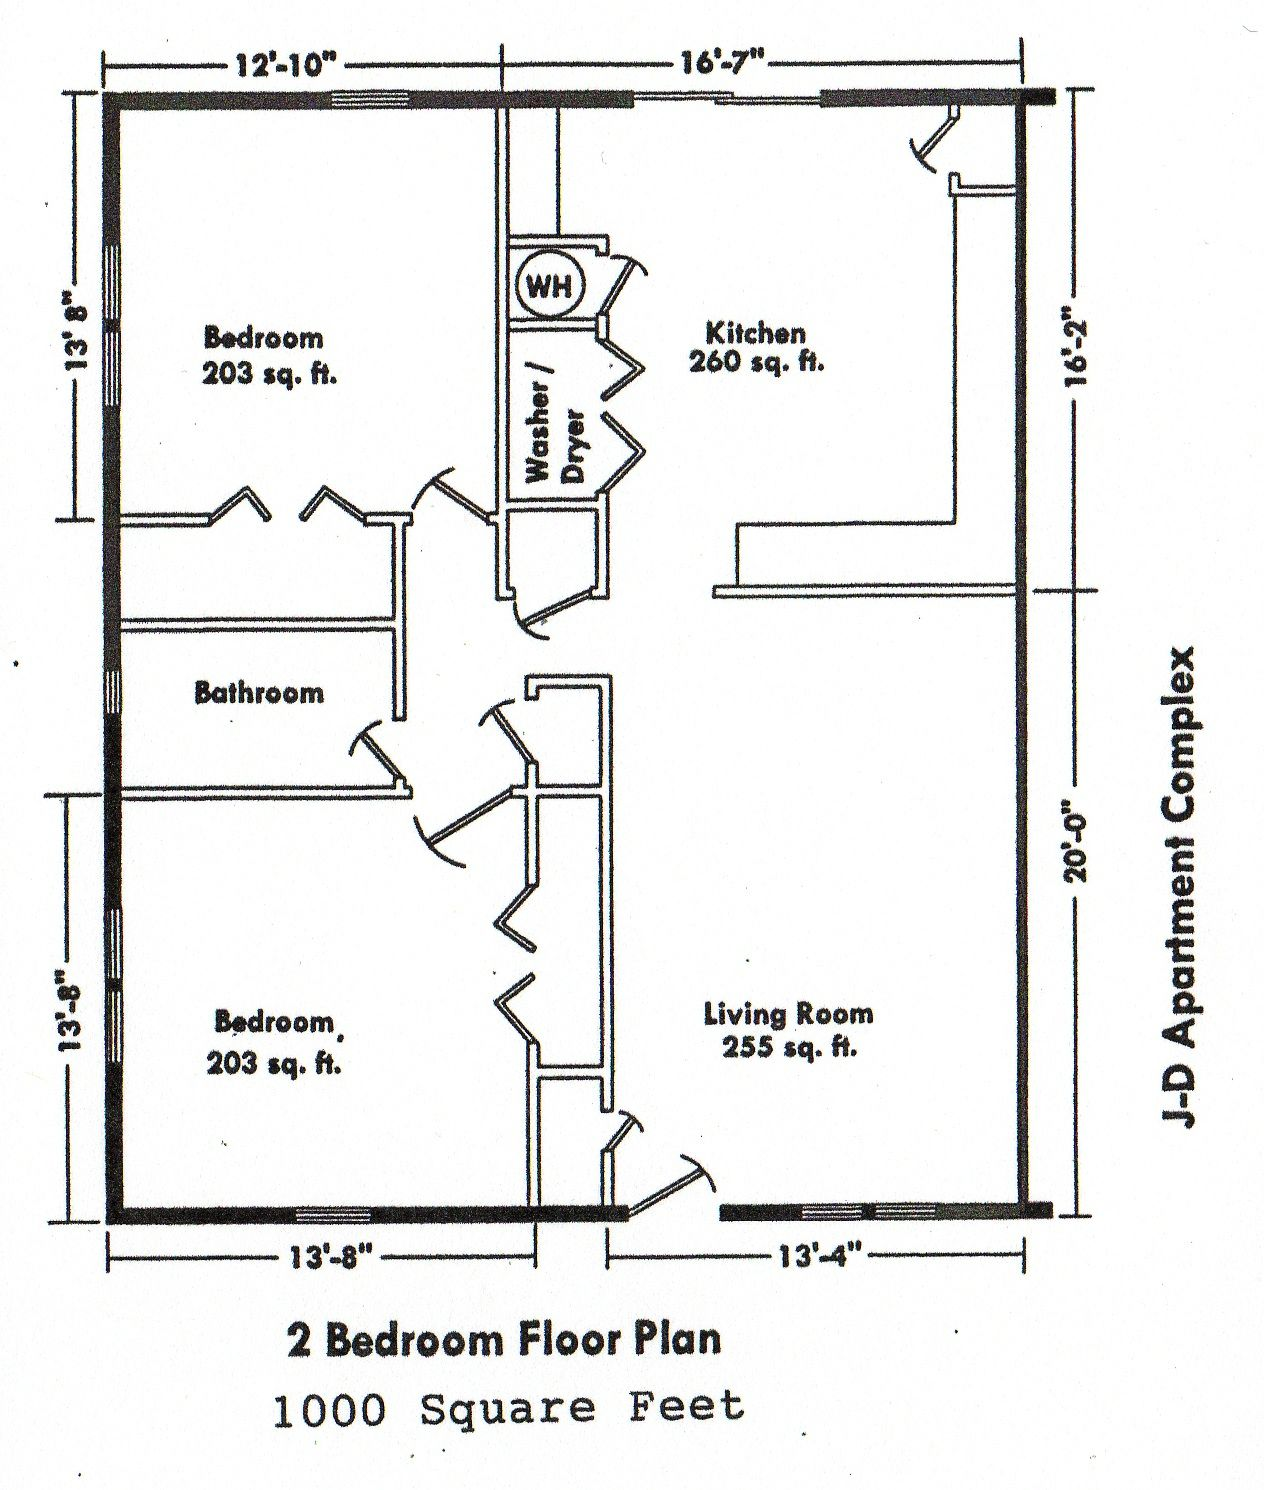 Simple house plan with 2 bedrooms and garage - Small House Floor Plans 2 Bedrooms Master Bedroom Suite Home Addition Plans House Plans